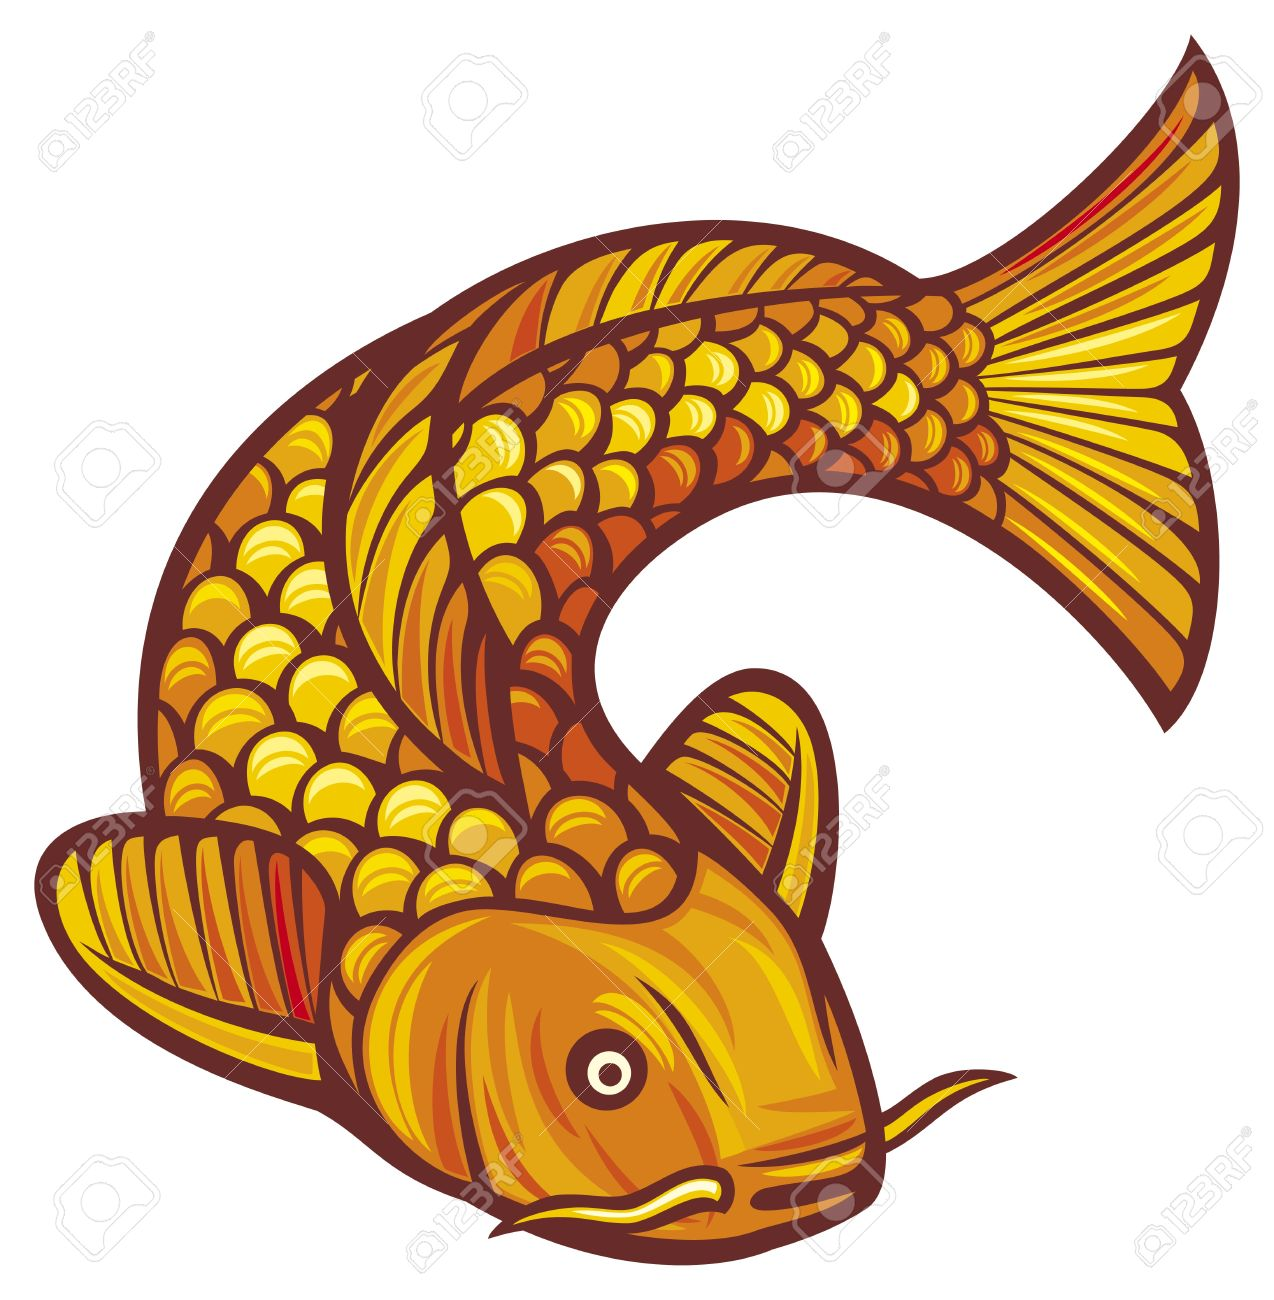 Koi Fish clipart #14, Download drawings